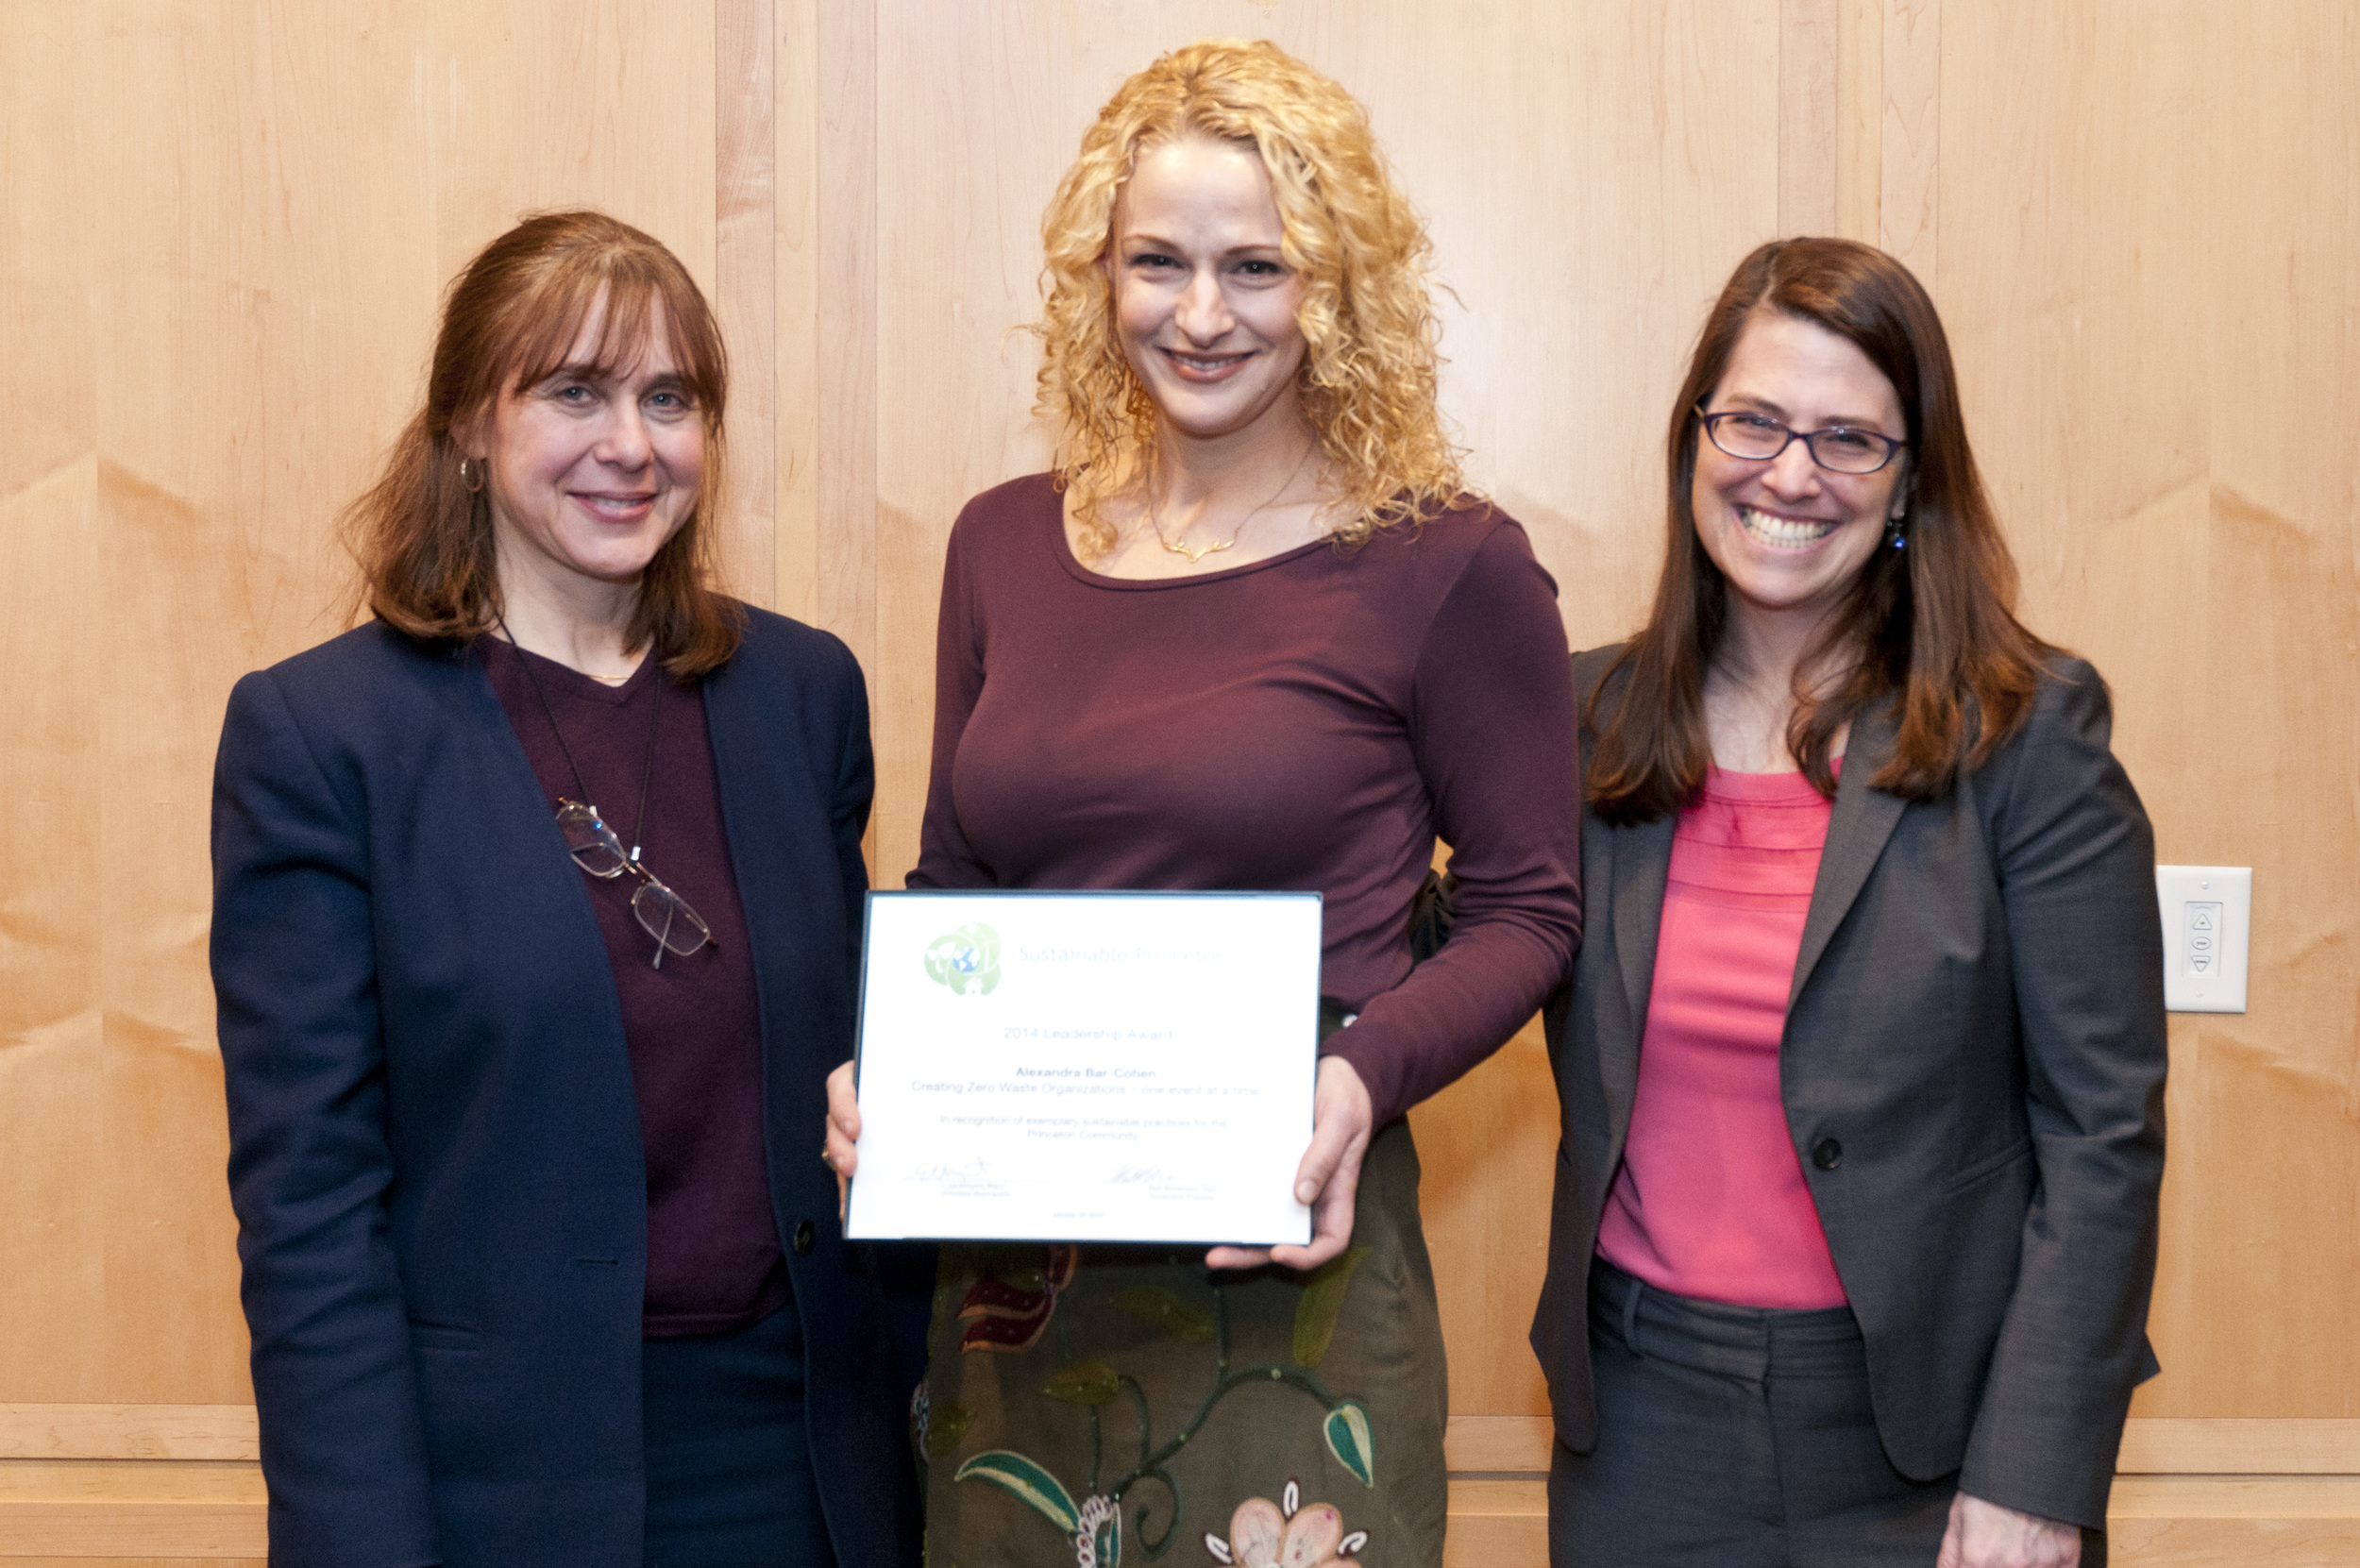 Alexandra Bar-Cohen (center) accepting award with Sustainable Princeton Vice-Chair, Heidi Fichtenbaum (left) and Mayor Liz Lempert (right). Photo by Cyndi Shattuck.